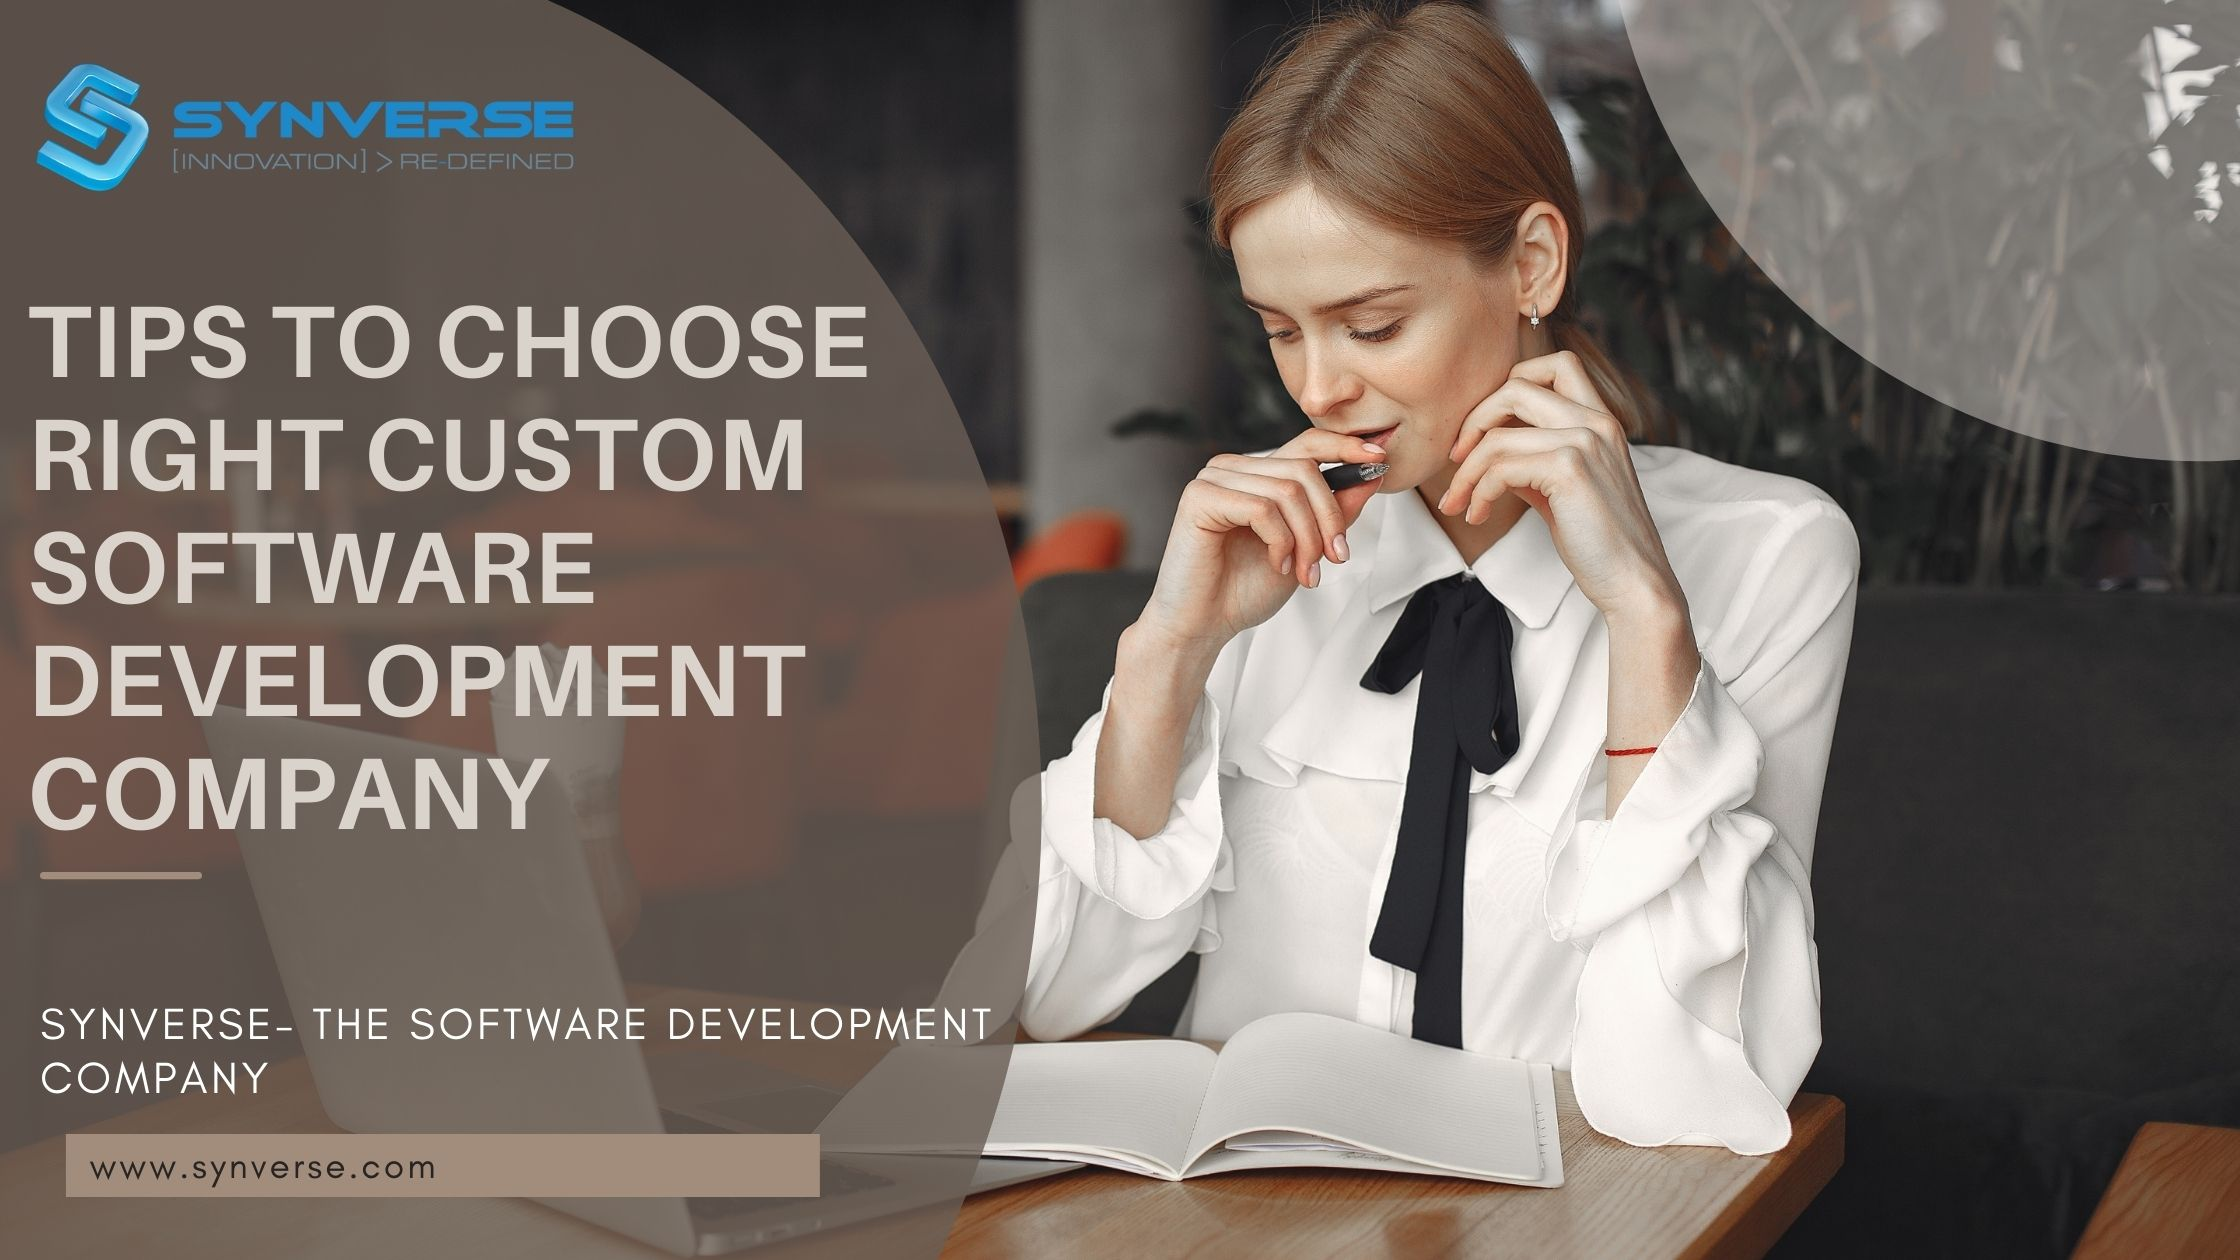 Finest Software Development Agency | tips to choose the right custom software development company UK synverse.com